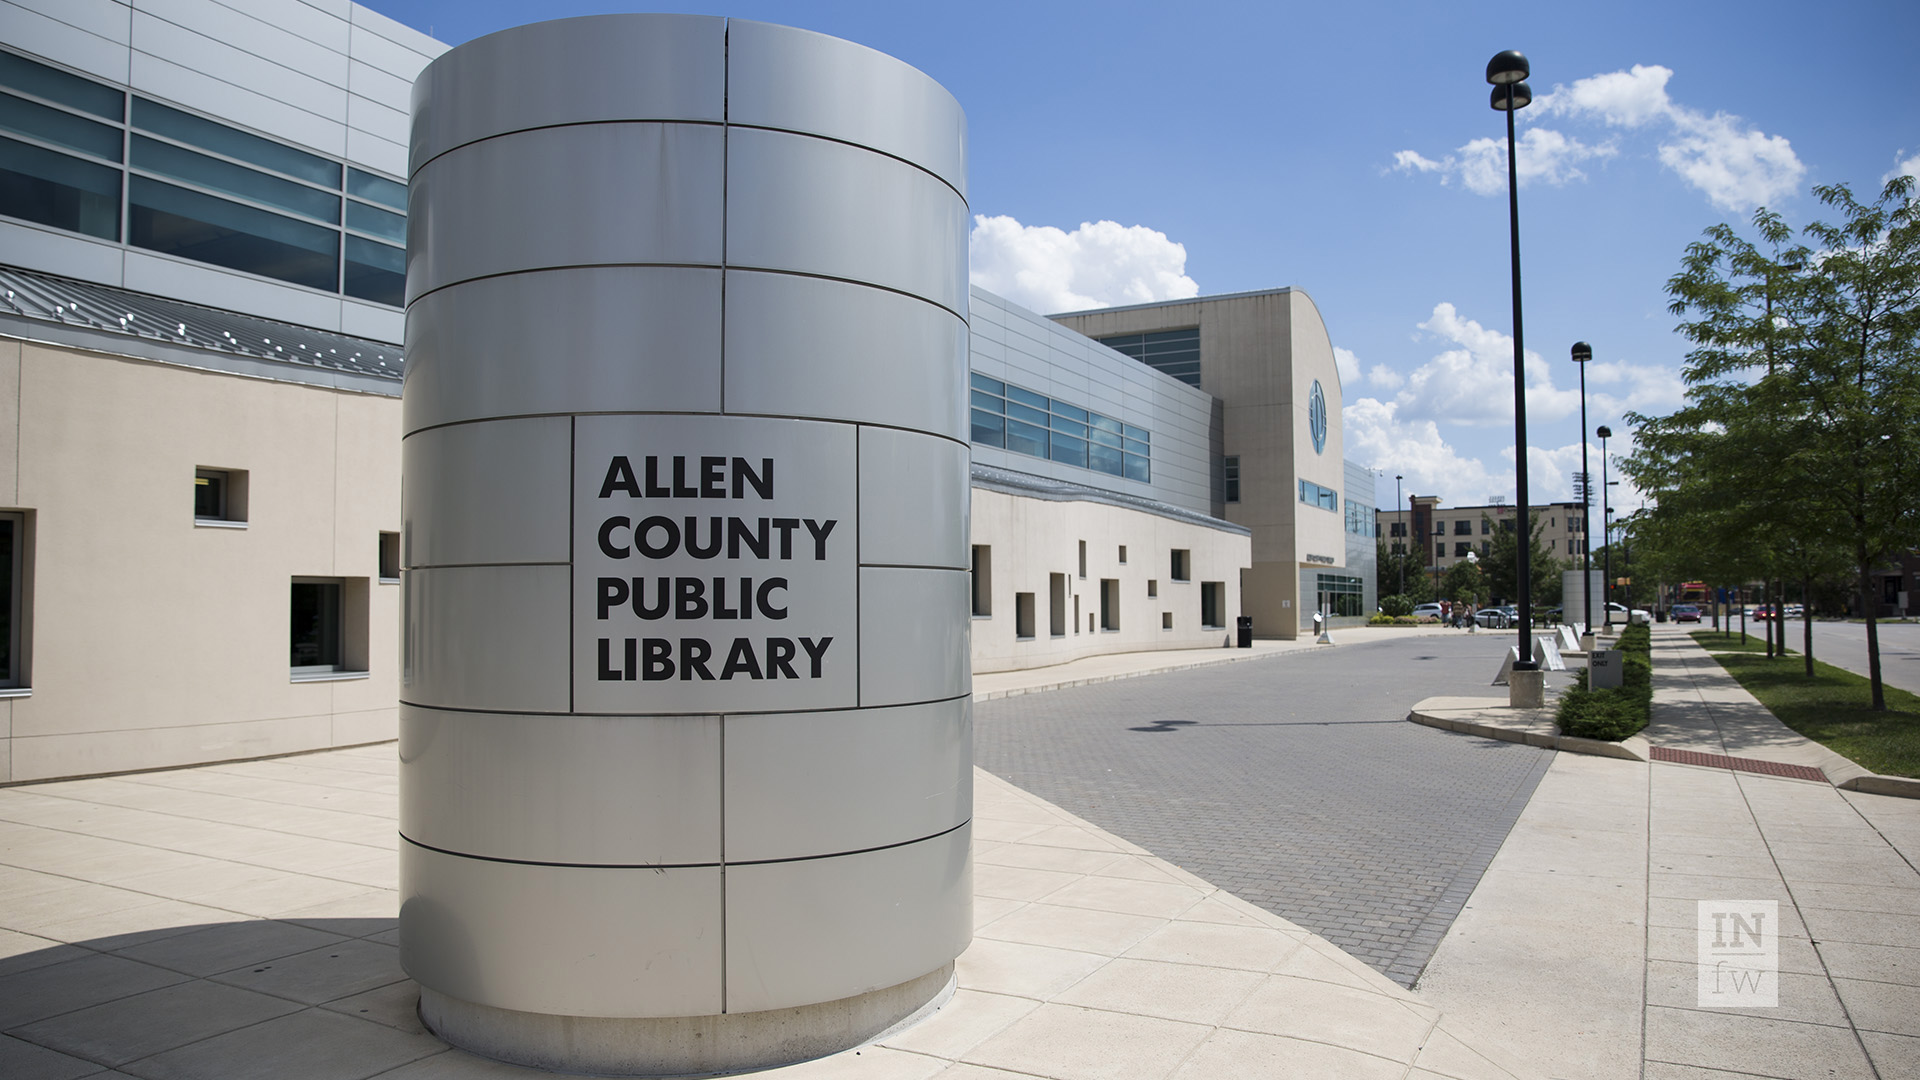 Allen County Public Library Native and African American Online